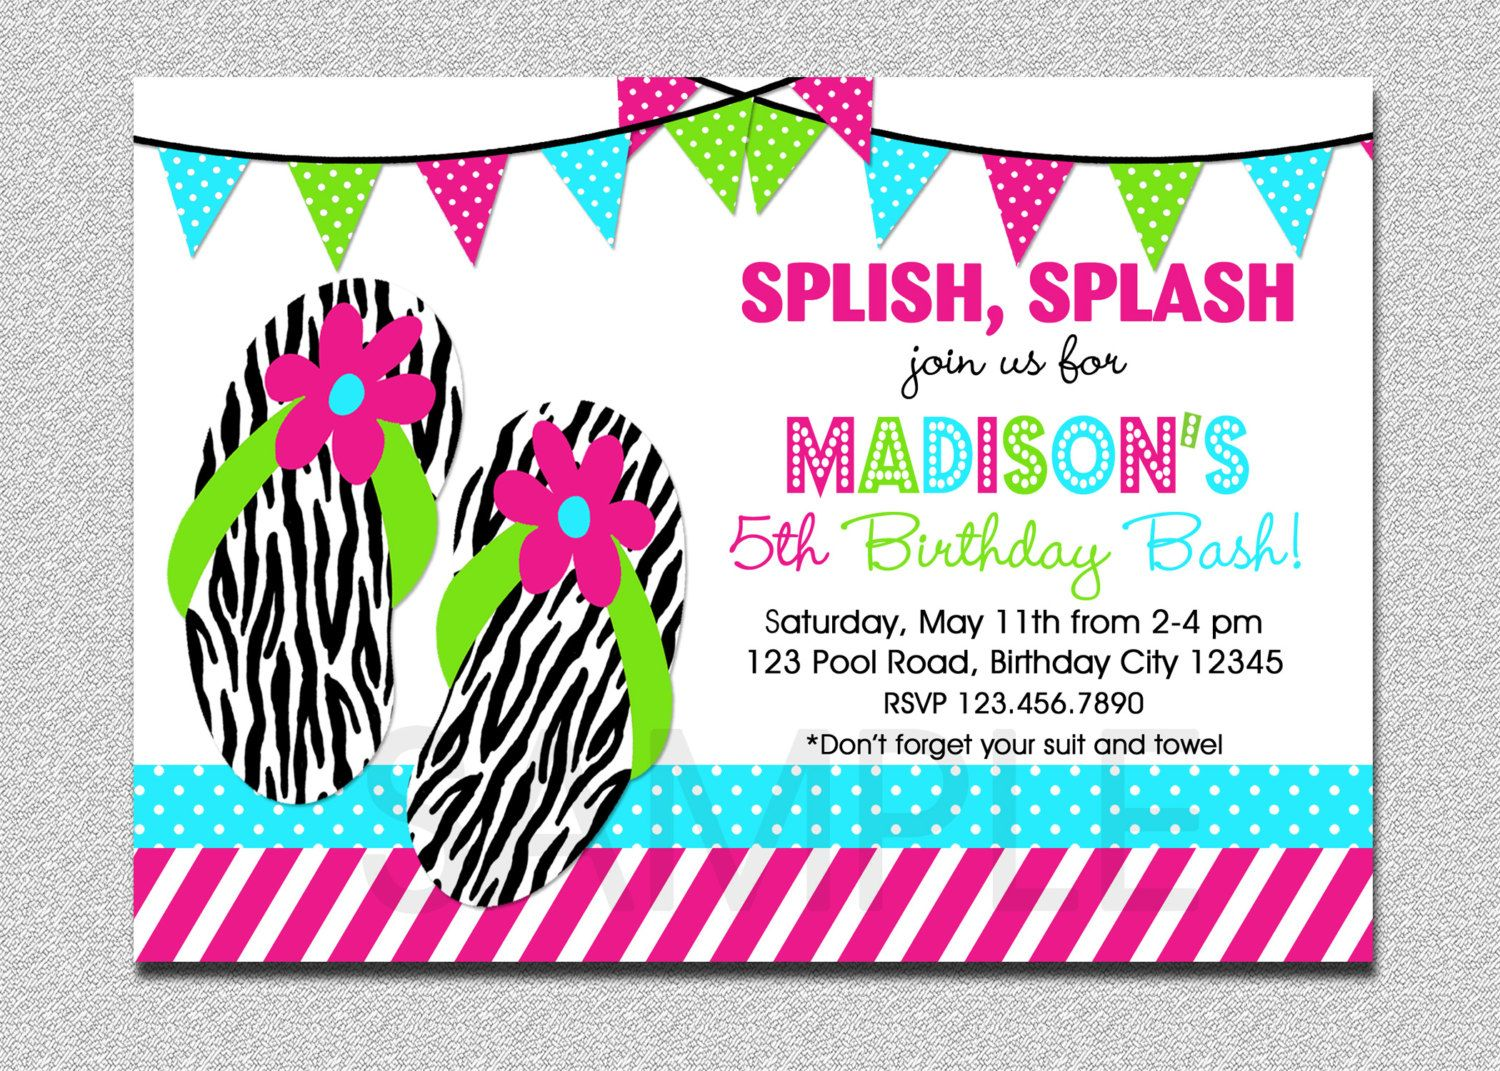 Splish Splash Pool Party Invitation 1st Birthday Pool Party ...